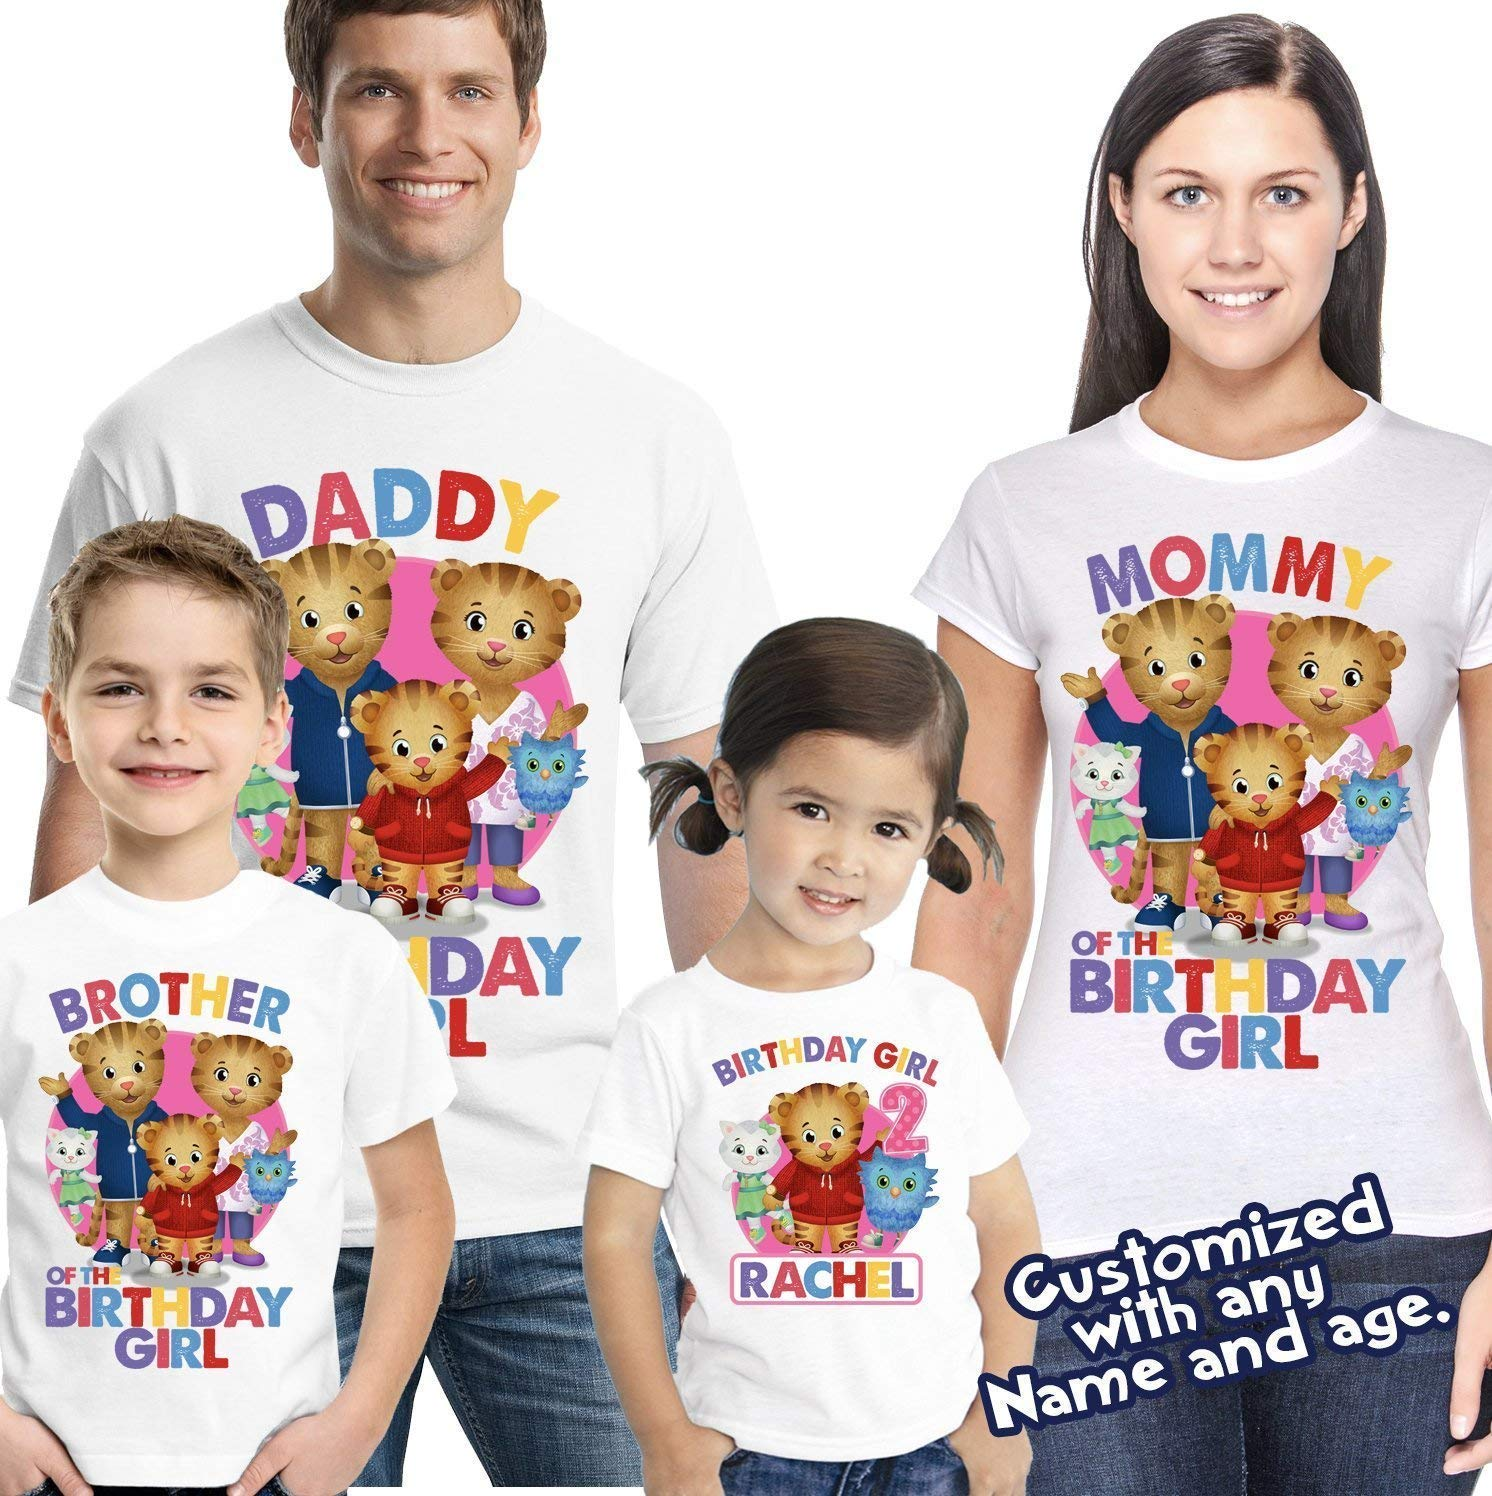 906868bbbae9 Amazon.com  Daniel tiger birthday girl shirt